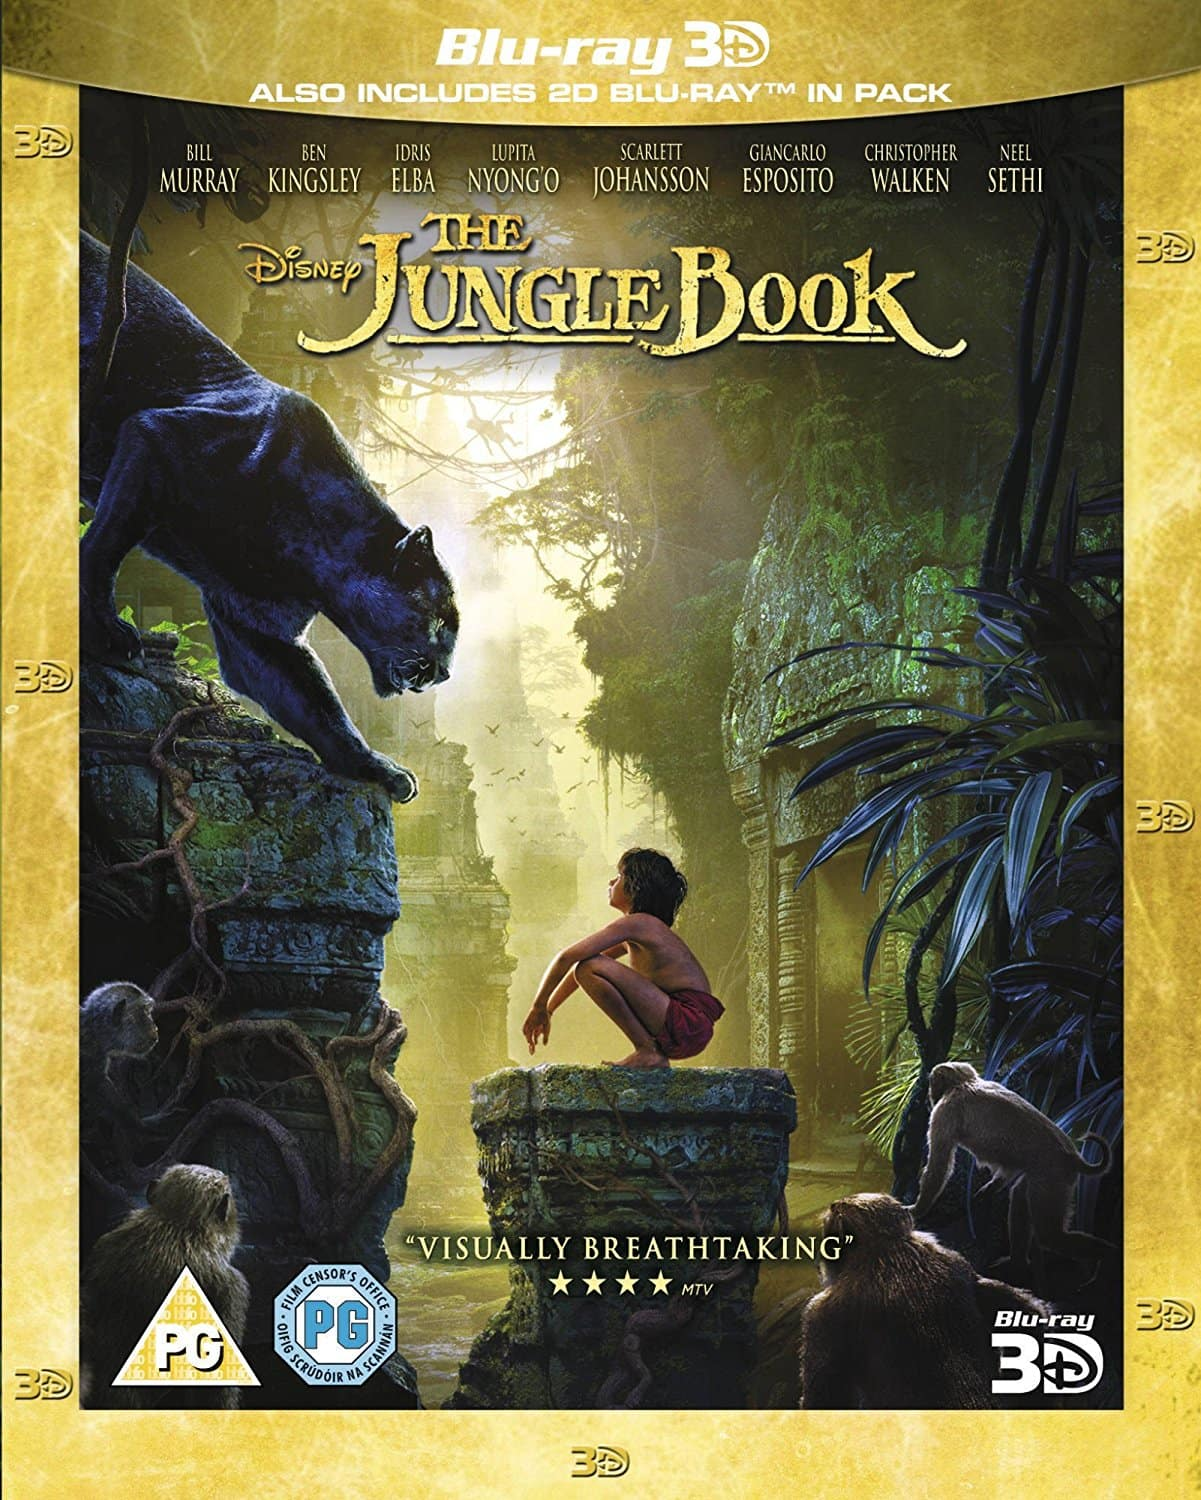 Region Free: The Jungle Book 2016 (3D Blu-ray + Blu-ray) $13.48 Shipped